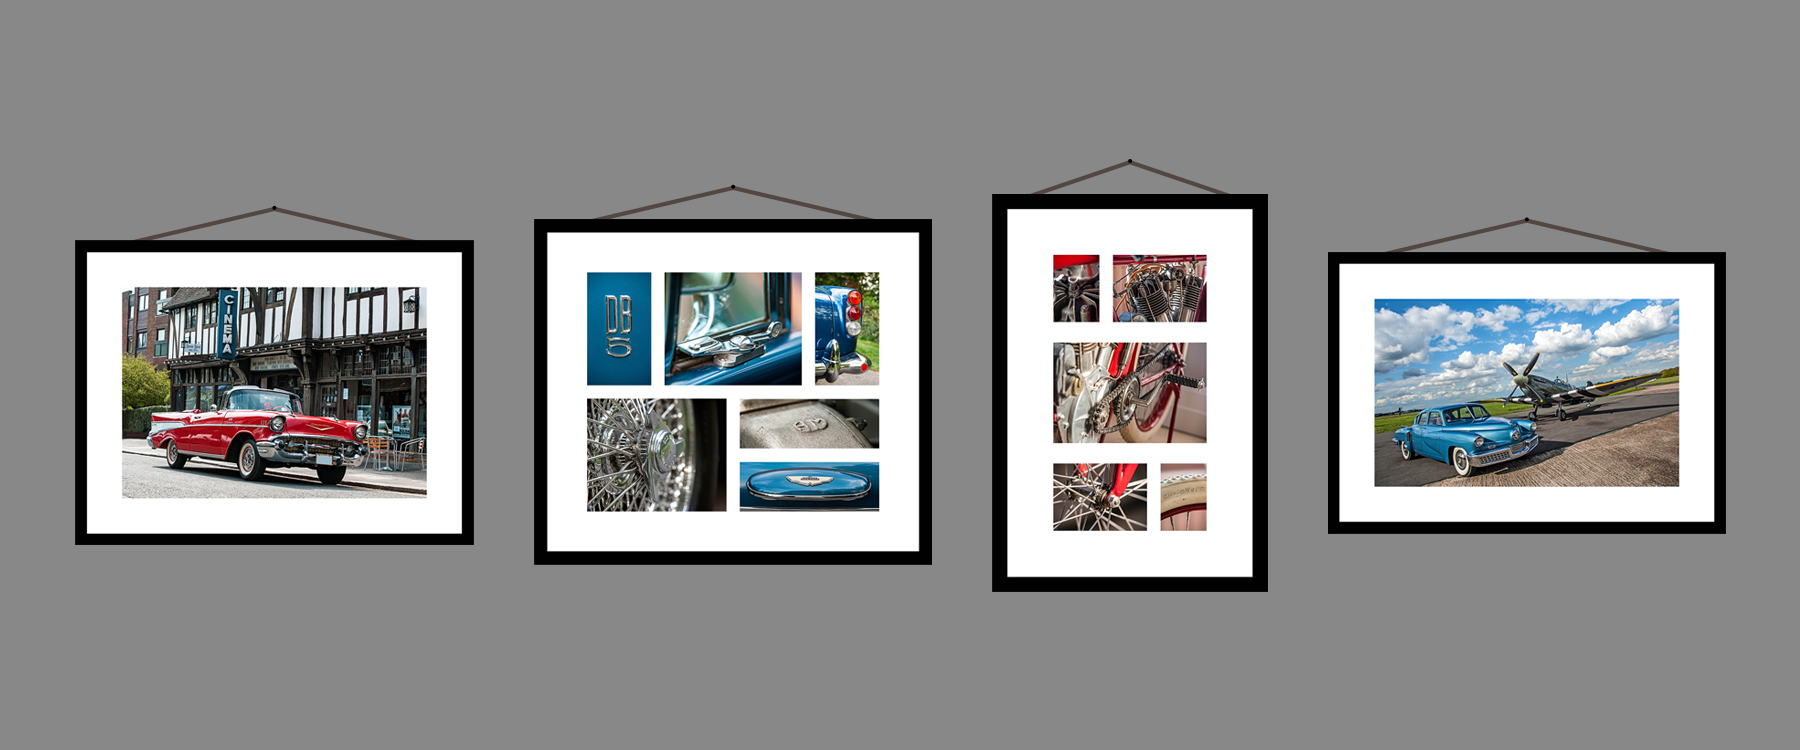 Limted Edition Framed Photographs Banner.jpg